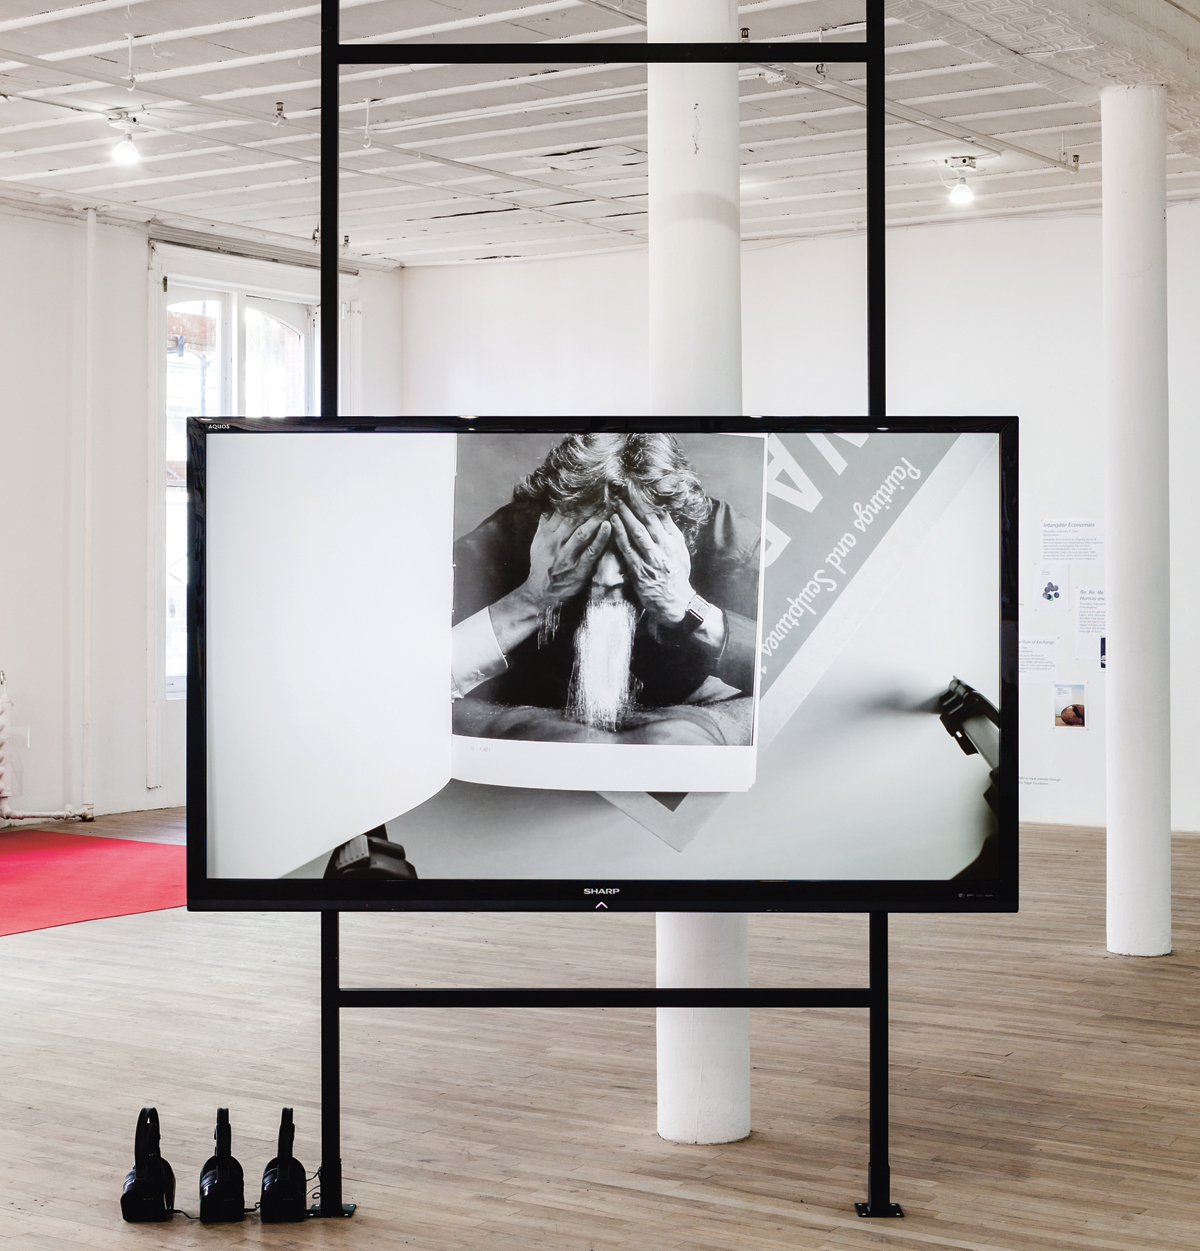 Rosebud, 2013, video. Installation view. Courtesy: James Richards and Rodeo, London